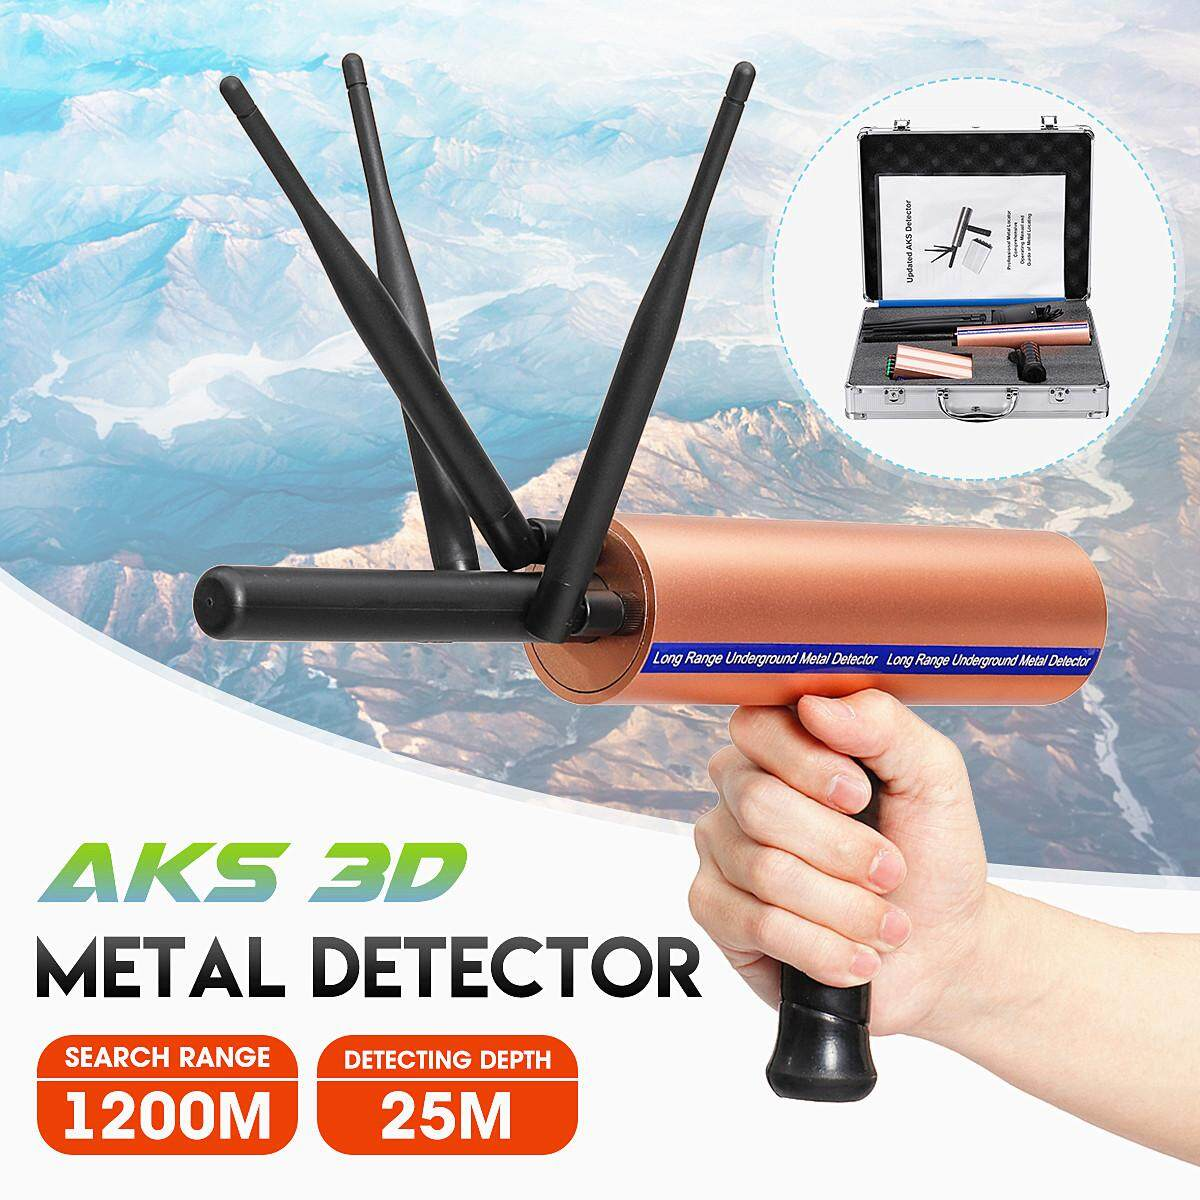 EverGood AKS 3D Metal Detector Detective 1200 Meters Long Distance Gold  Treasure Excavator Scanner